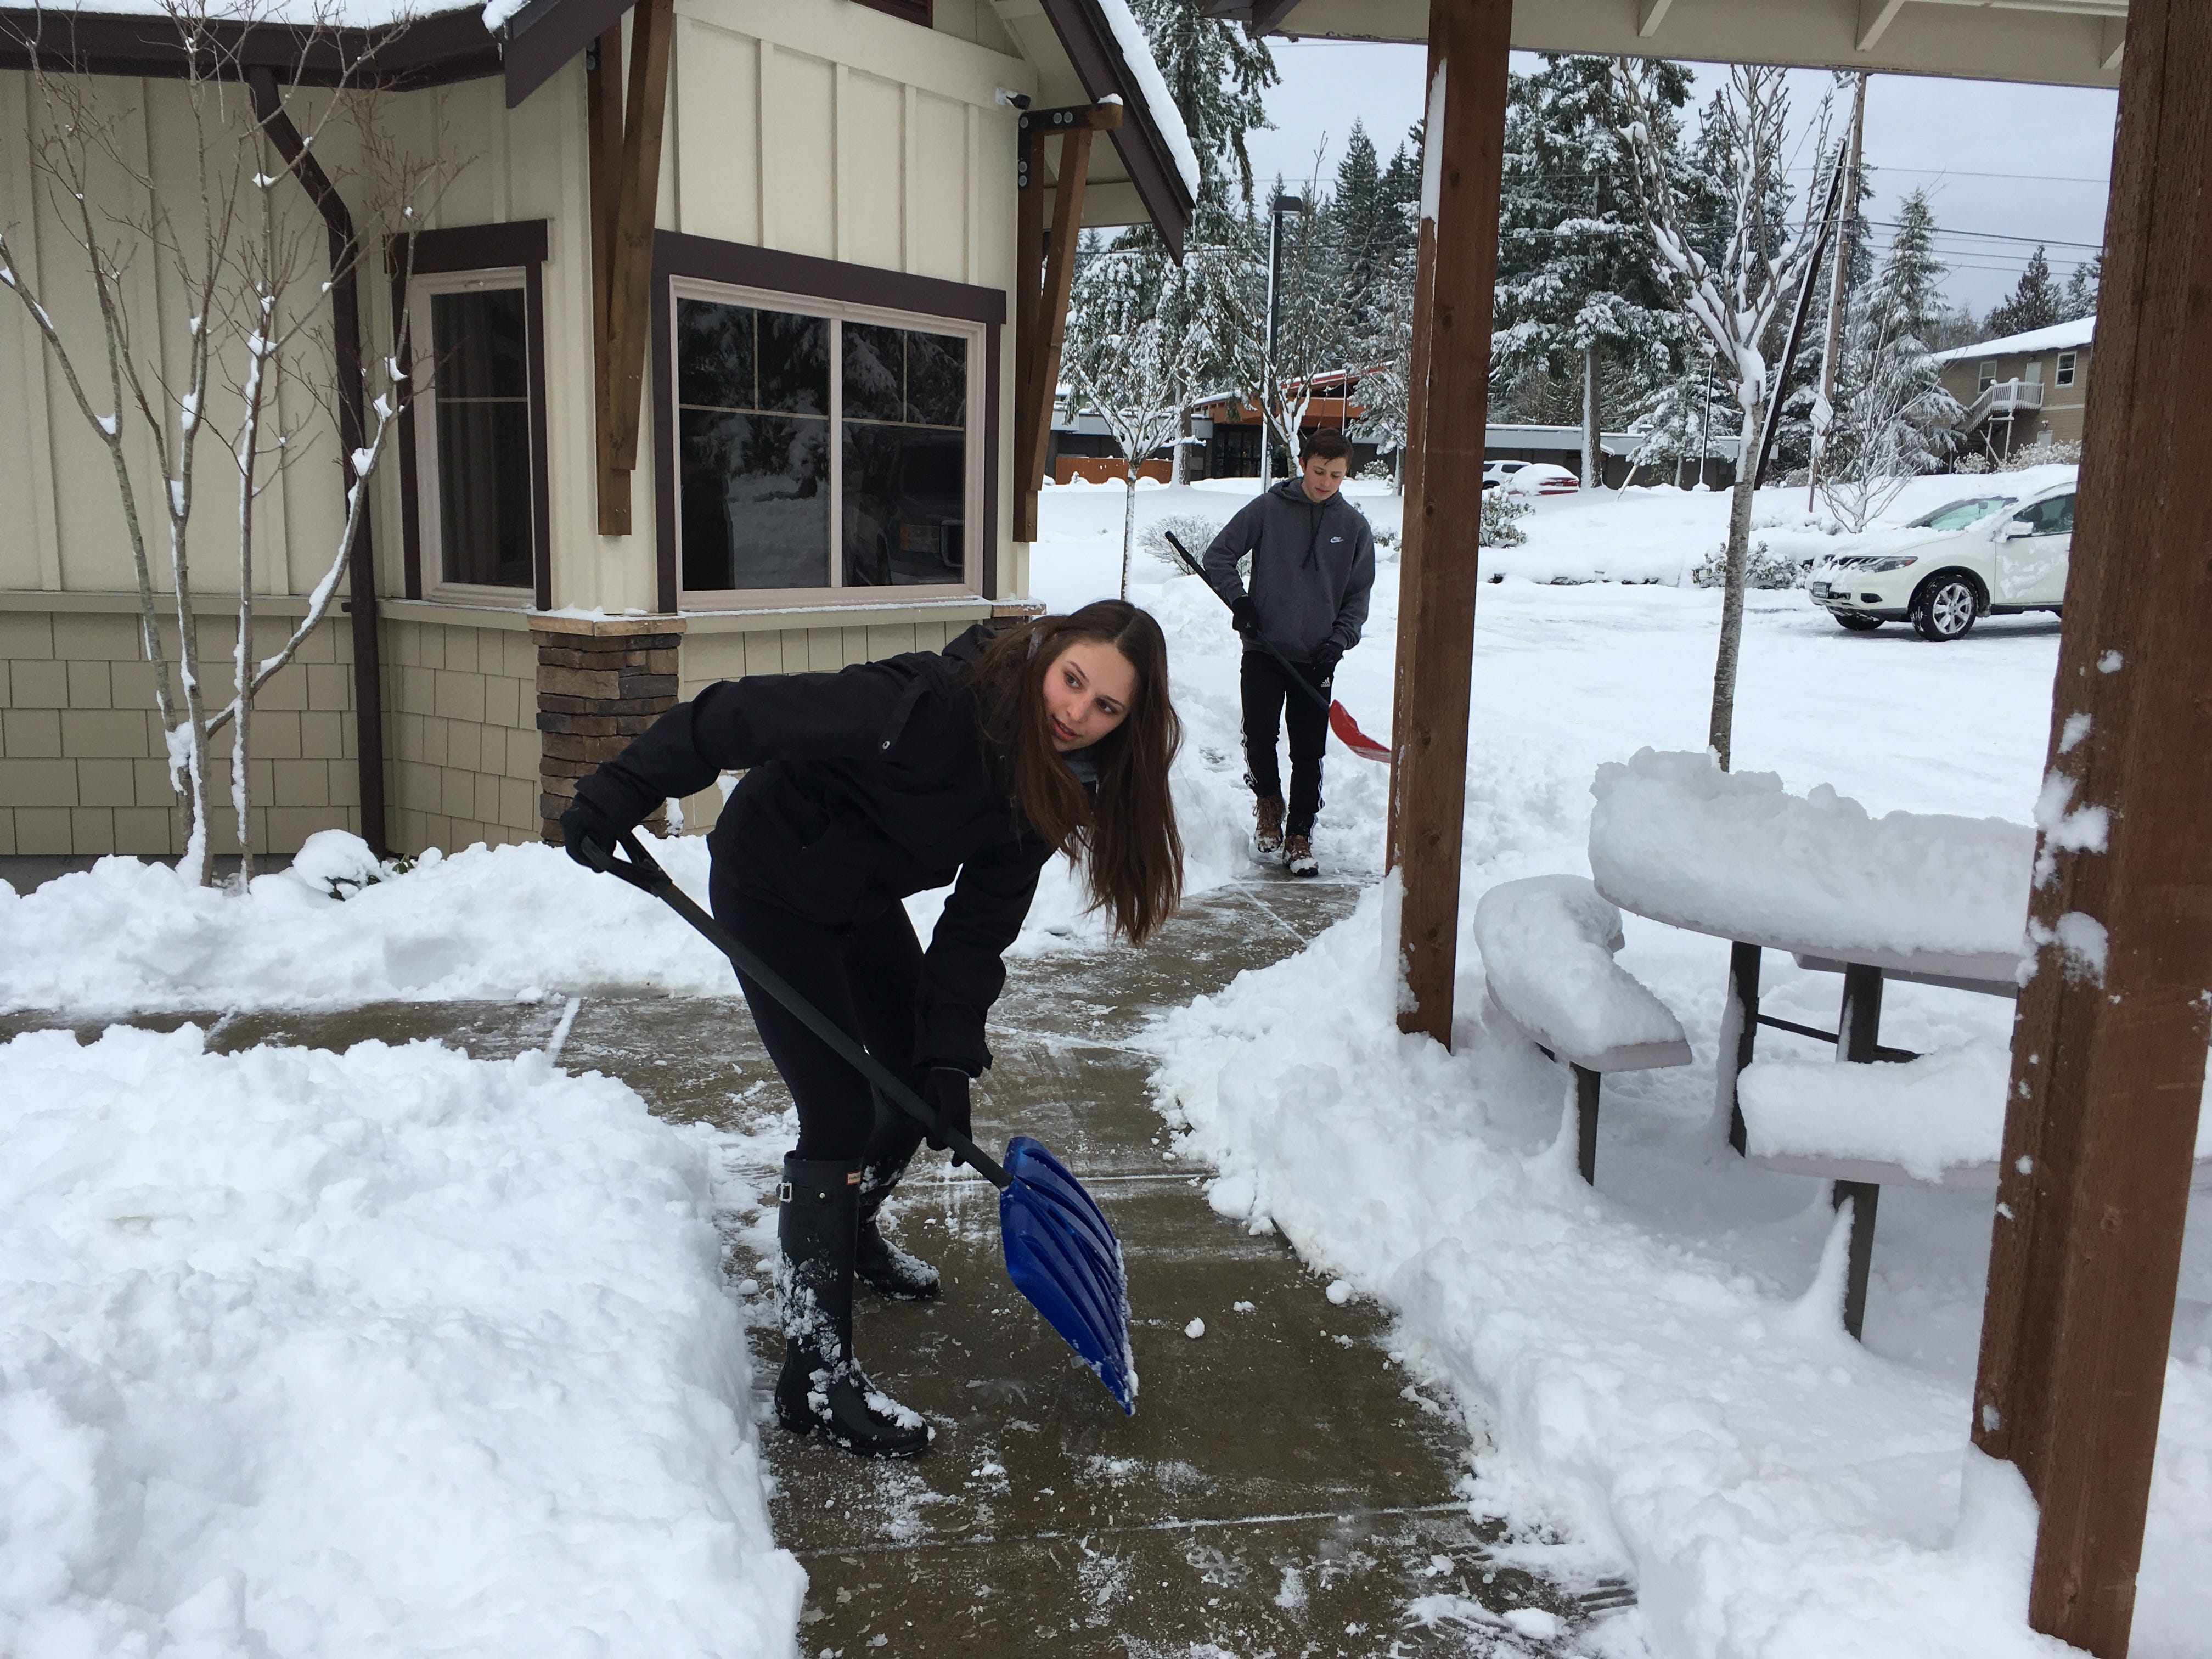 Clara Bock, 16, and Lukas Bock, 14, shovel snow on the sidewalk of South Kitsap Family Dentistry in Port Orchard on Feb. 11, 2019. Their father Dr. Chris Bock was at the office for emergency cases only given the snow that closed schools and many businesses around Kitsap County.